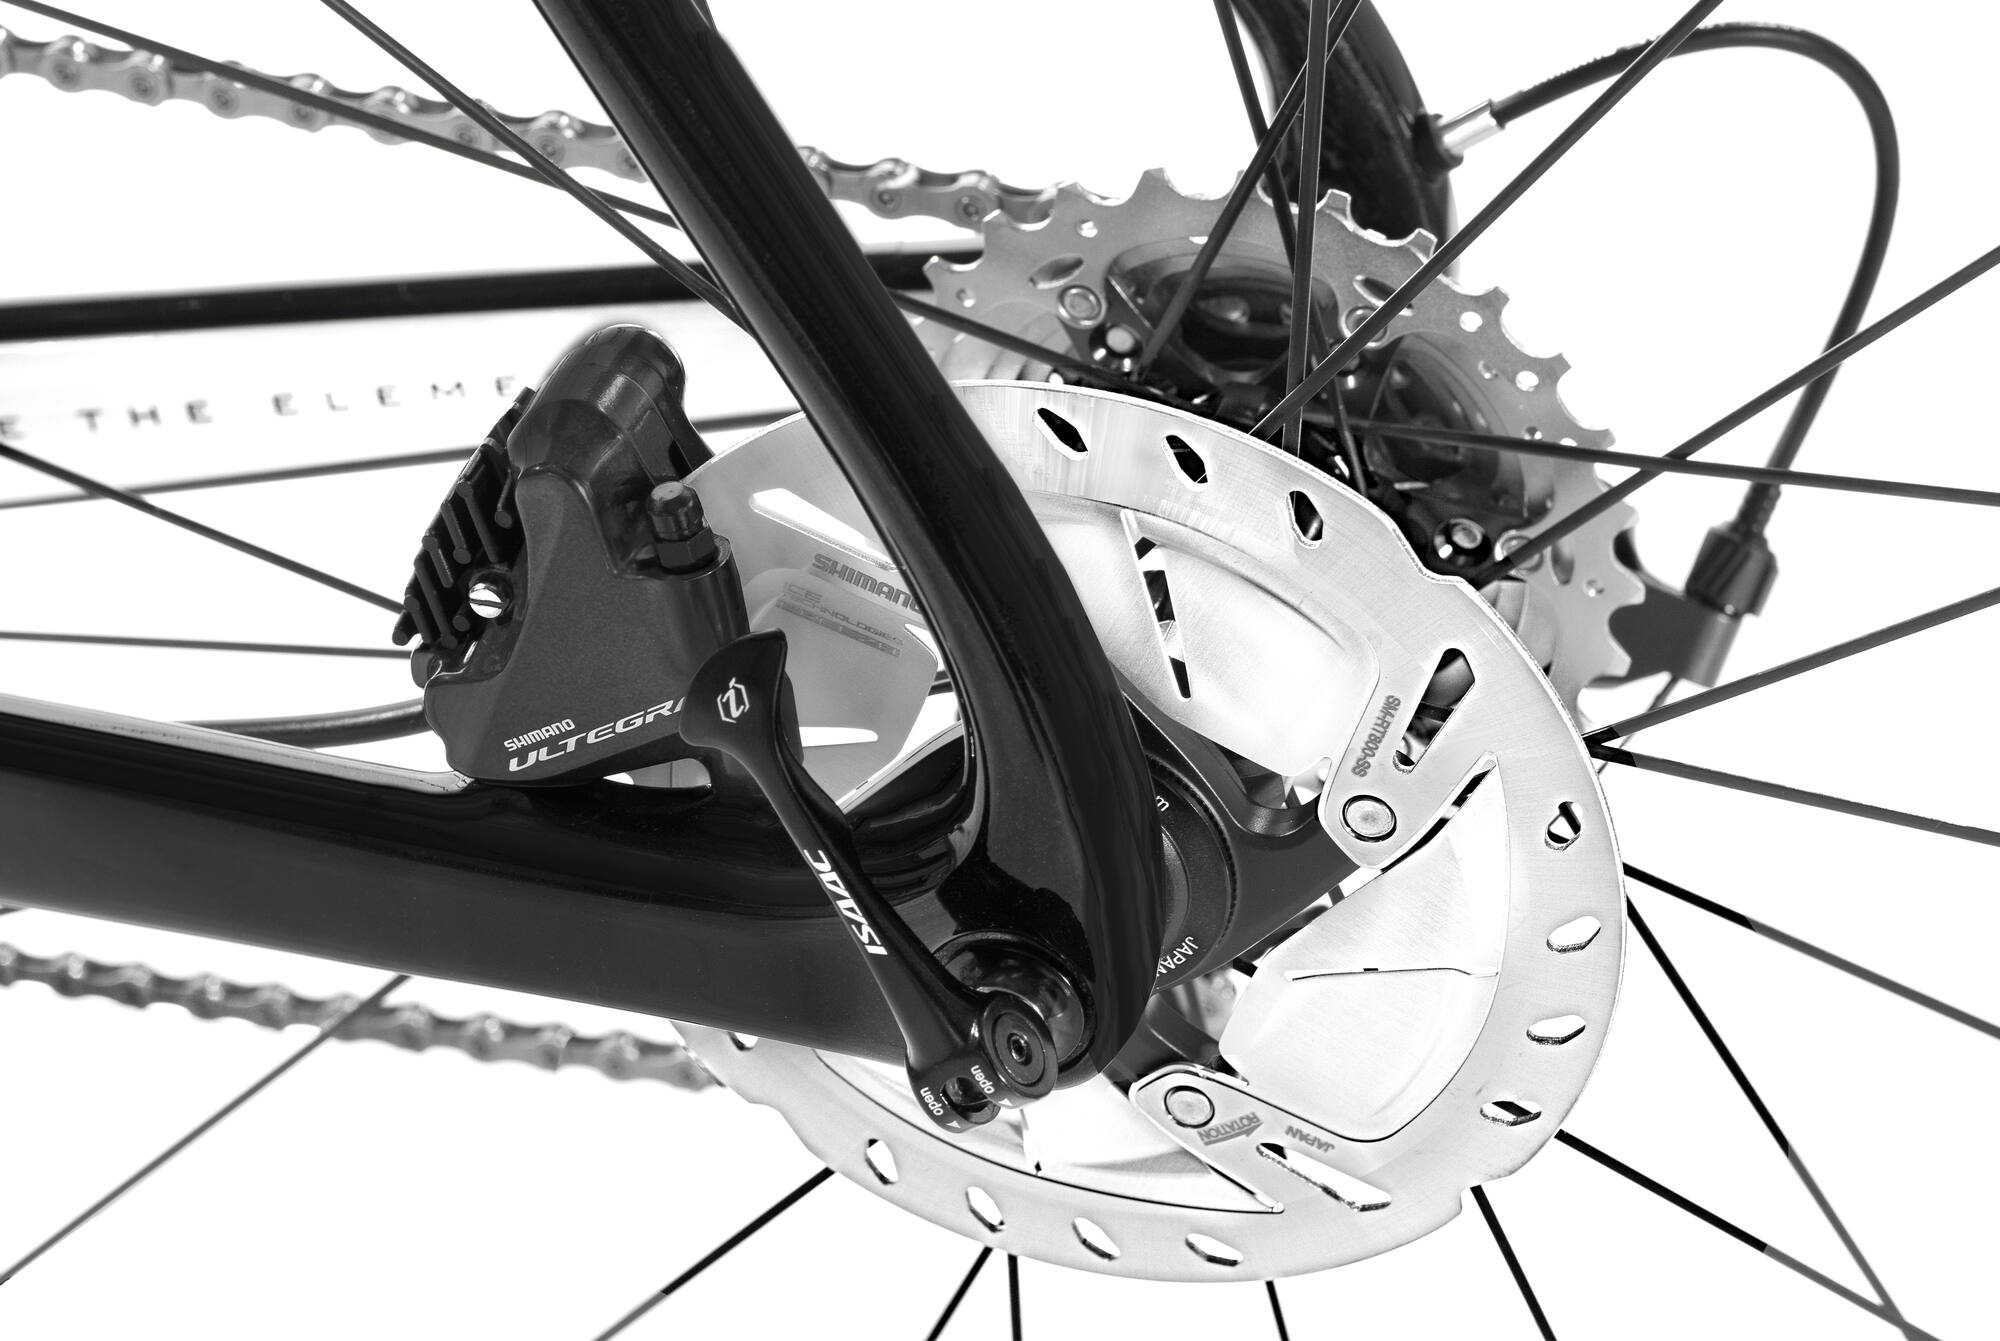 BIKE ELEMENT DISC | SHIMANO ULTEGRA Di2 R8050